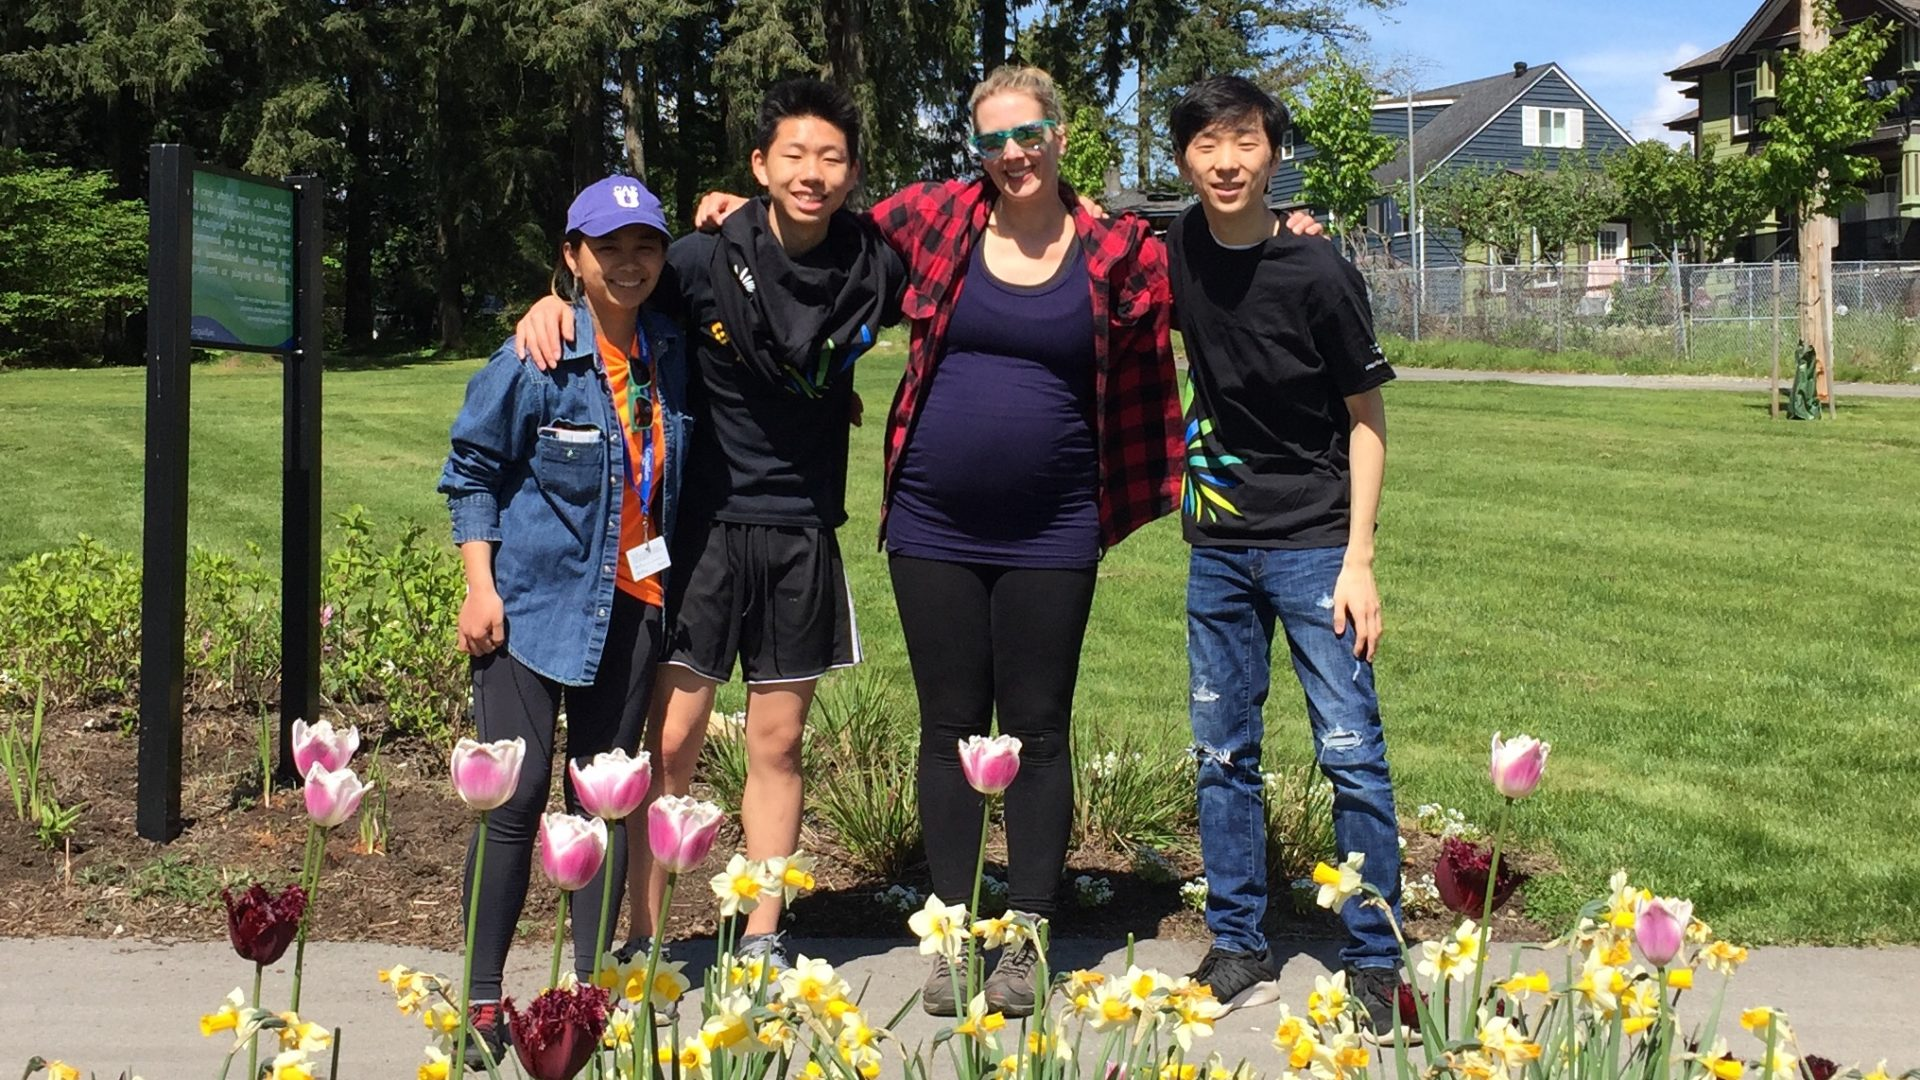 Planting Party With ParkSparks at the Coquitlam 'Good Neighbour Park'